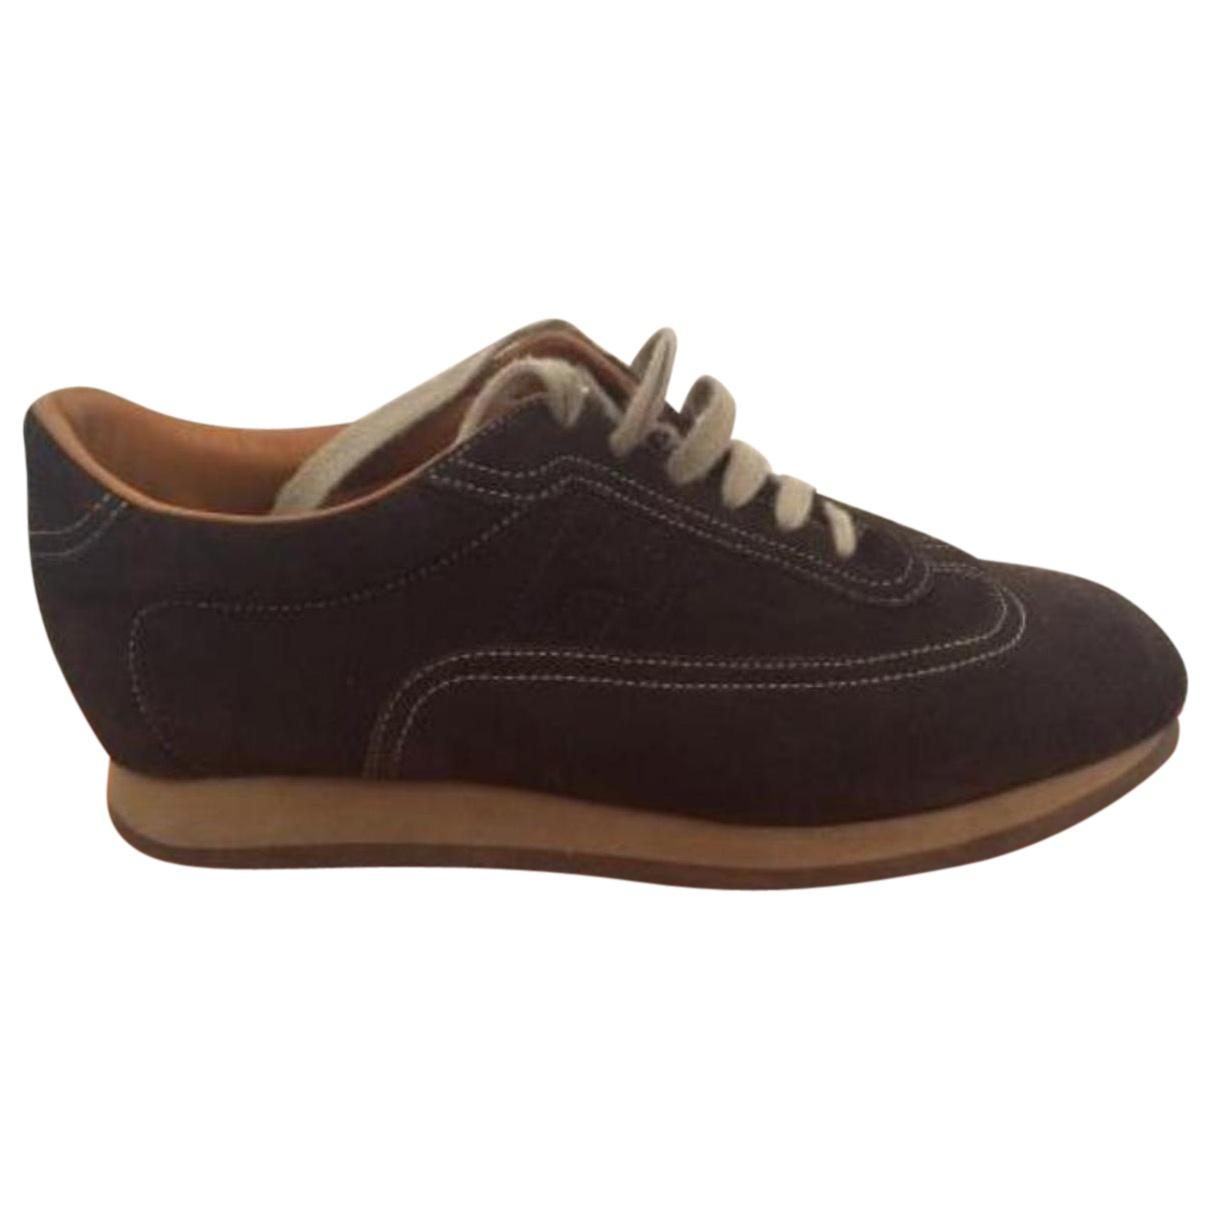 Pre-owned - Low trainers Herm</ototo></div>                                   <span></span>                               </div>             <div>                                     <div>                                             <hgroup>                                                     <div>                               Interlochen Presents                            </div>                                                     <div>                               Concerts, Events and Tickets | Interlochen Center for the Arts                            </div>                                                 </hgroup>                                             <div>                                                     <div>                                                             <div>                                                                     <ul>                                                                             <li>                                         <a href=